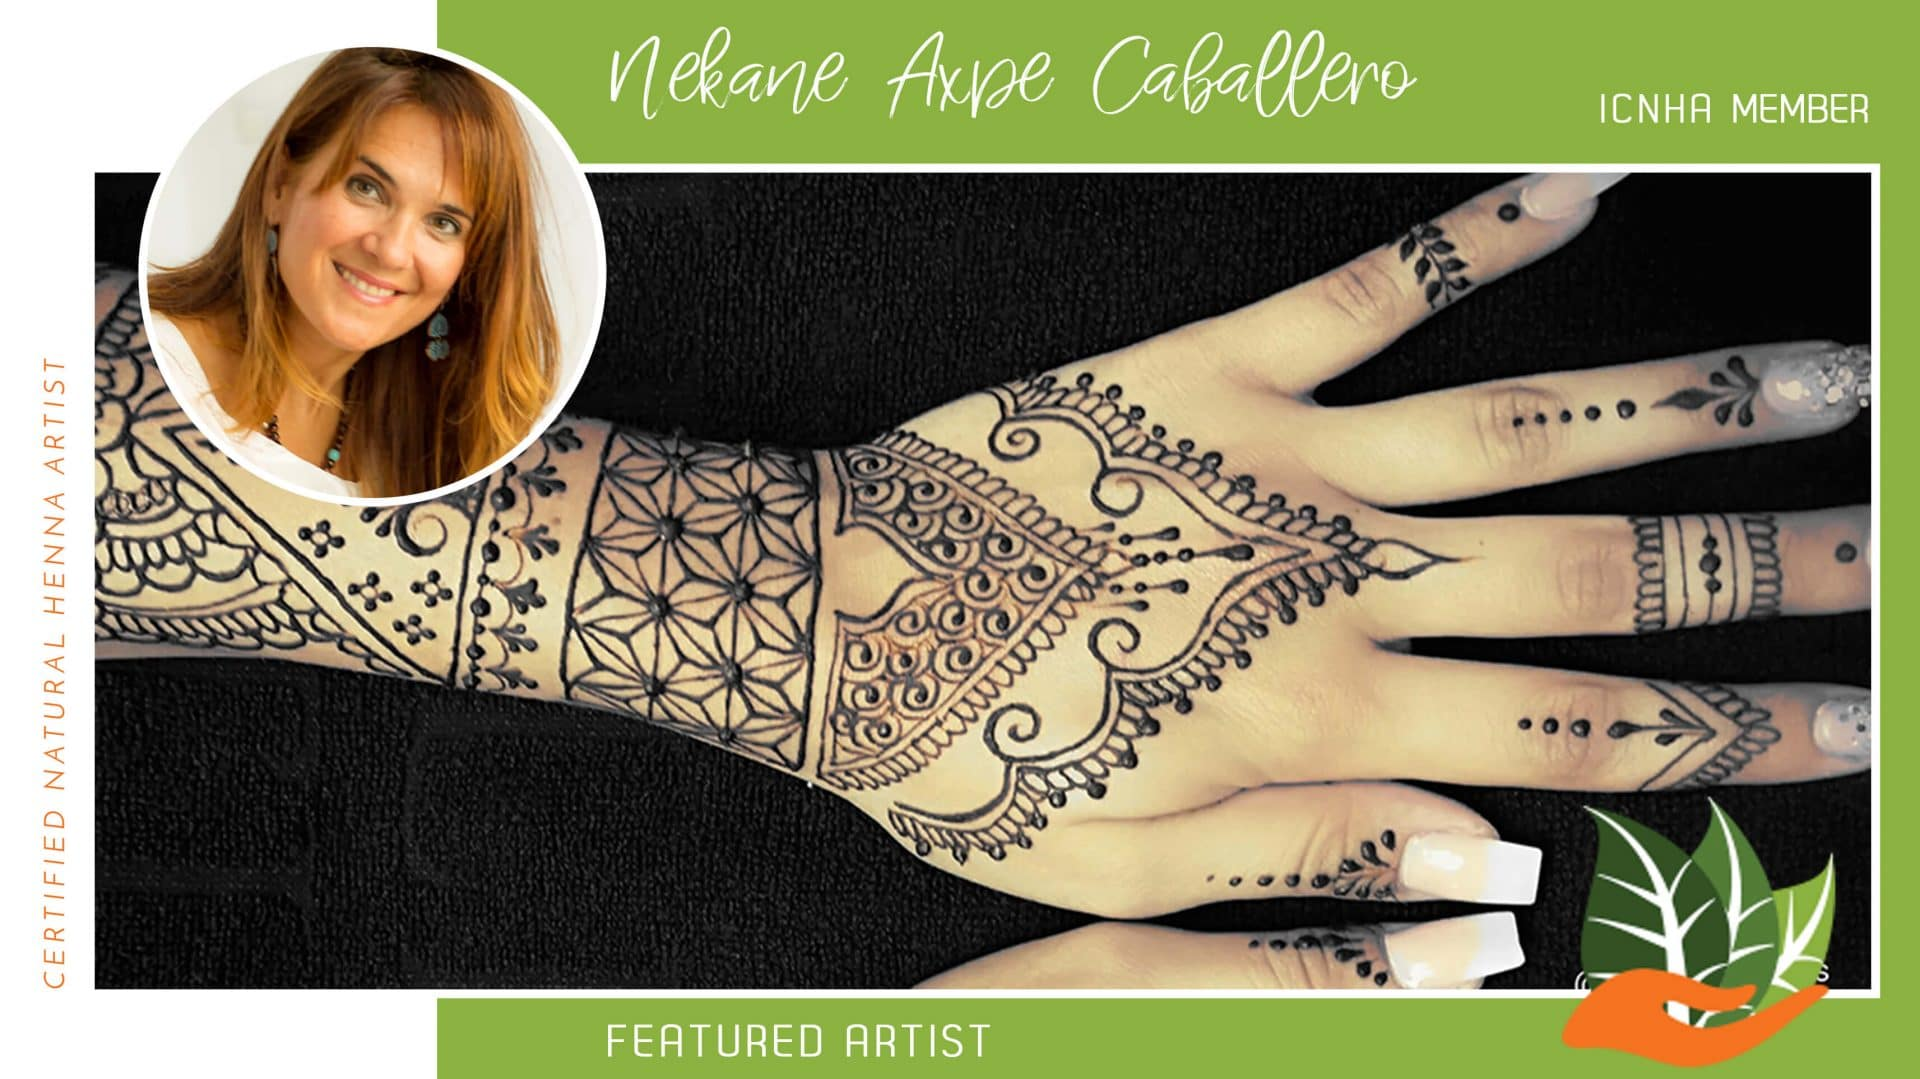 Featured Artist – Nekane Axpe Caballero